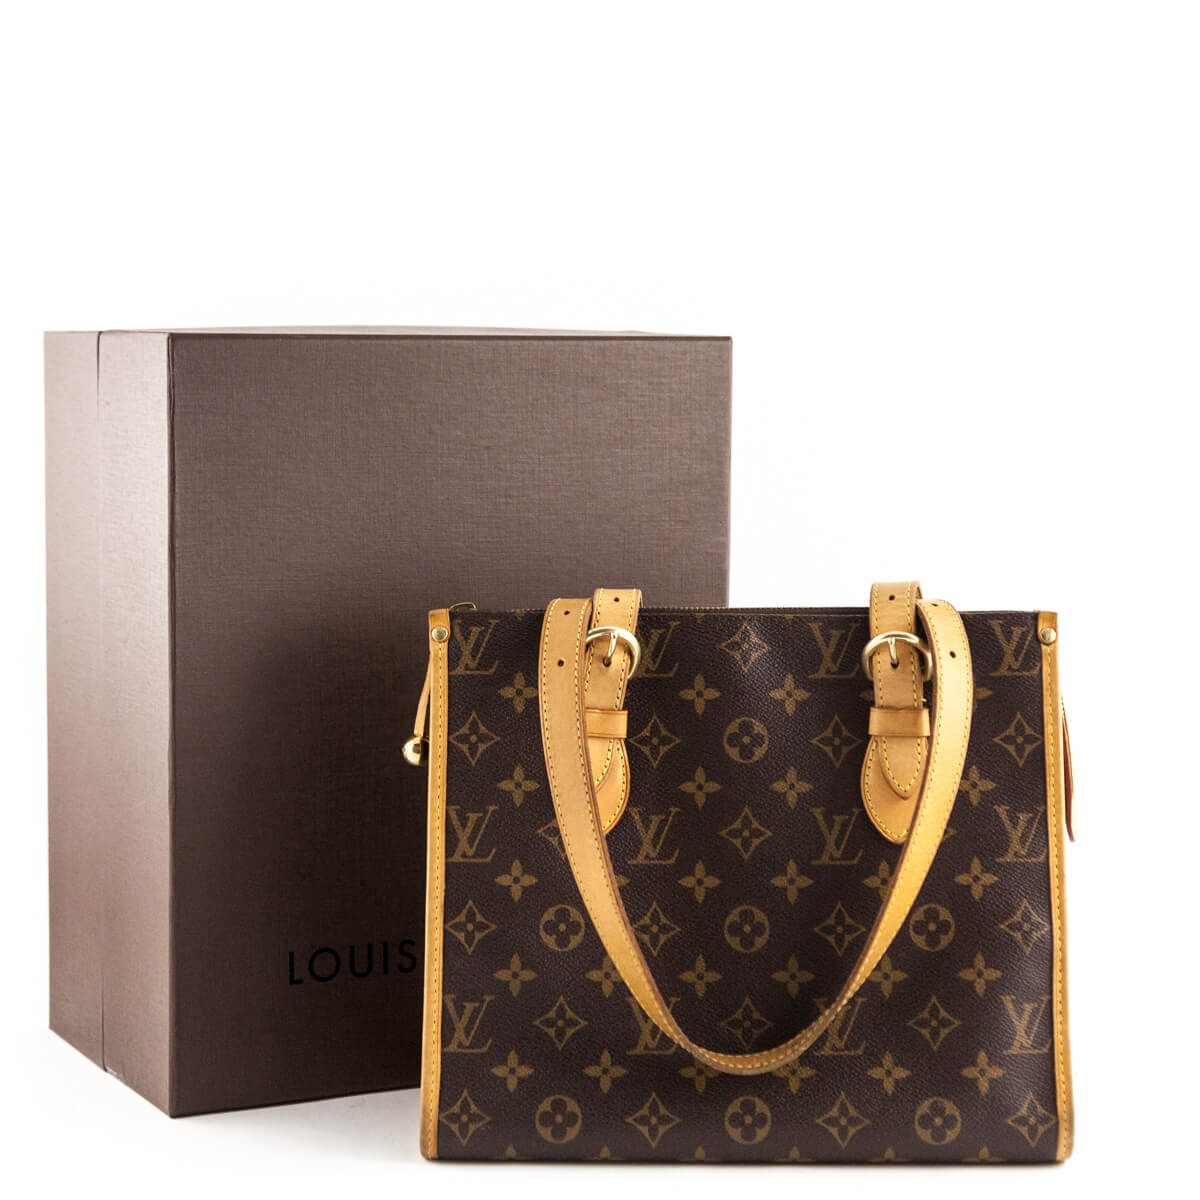 ac7dd24110be ... Louis Vuitton Monogram Popincourt Haut - LOVE that BAG - Preowned  Authentic Designer Handbags ...